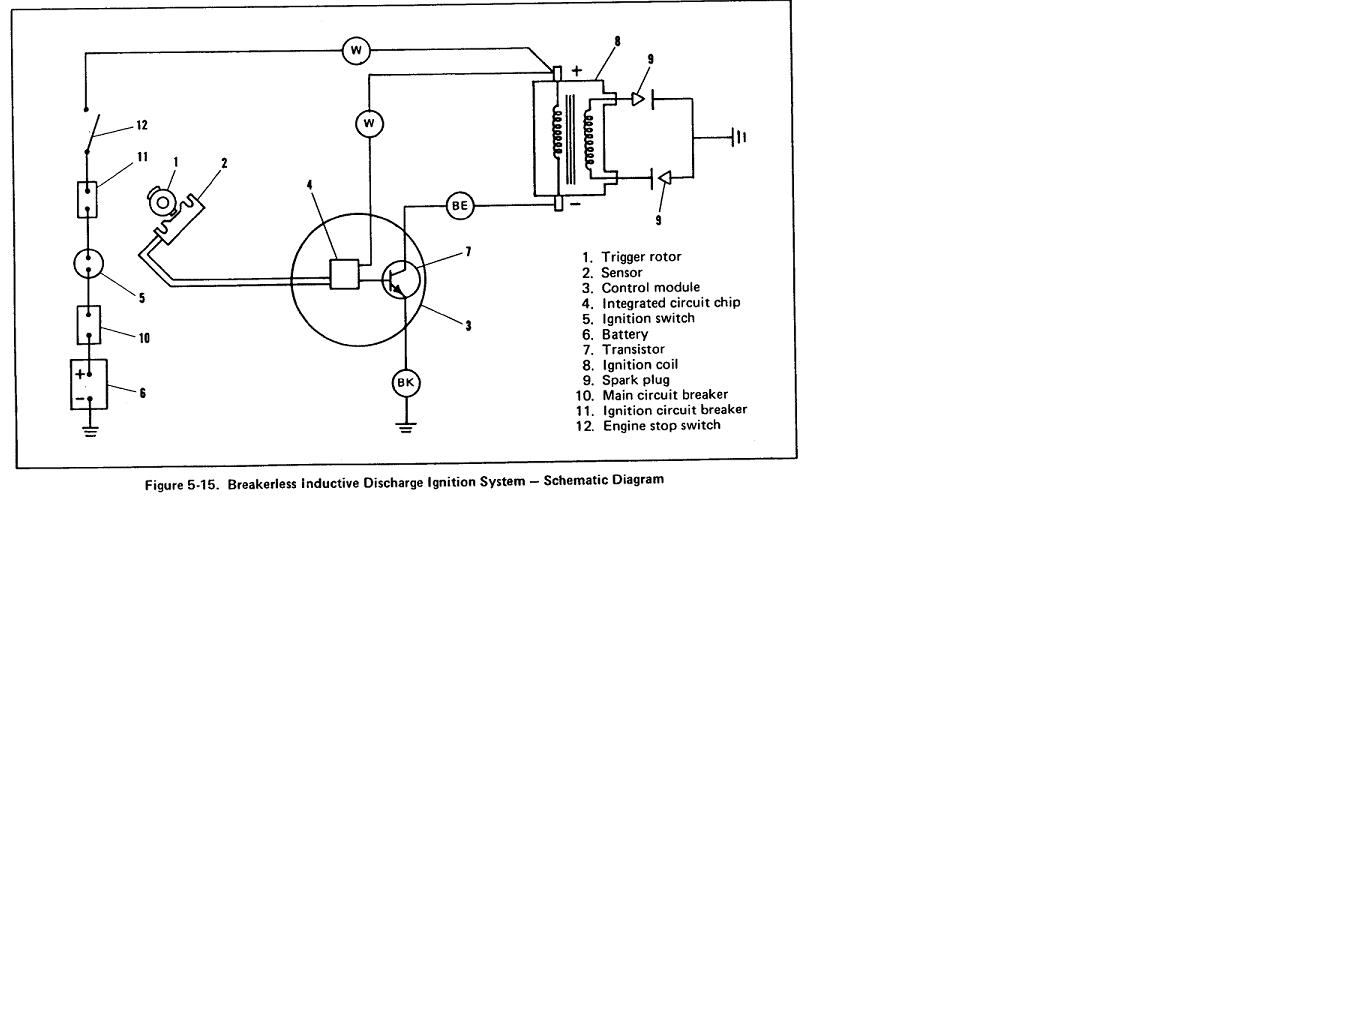 Harley Dyna S Ignition Wiring Diagram | Wiring Diagram - Harley Ignition Switch Wiring Diagram